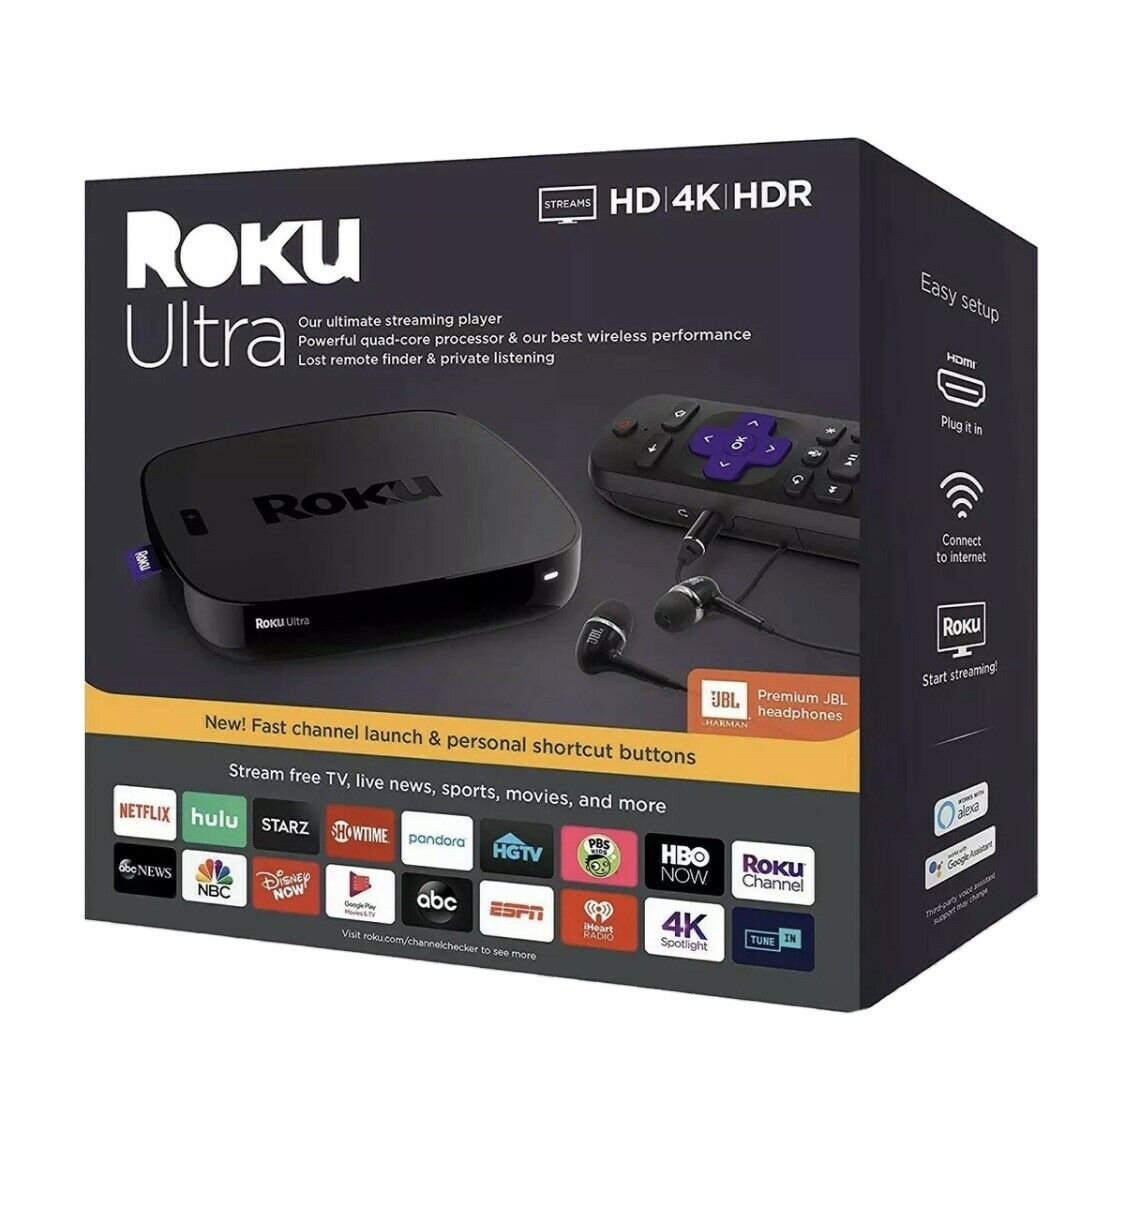 Roku Ultra 4K/HDR Streaming Player w/ Voice Remote & JBL Headphones headphones jbl player remote roku streaming ultra voice